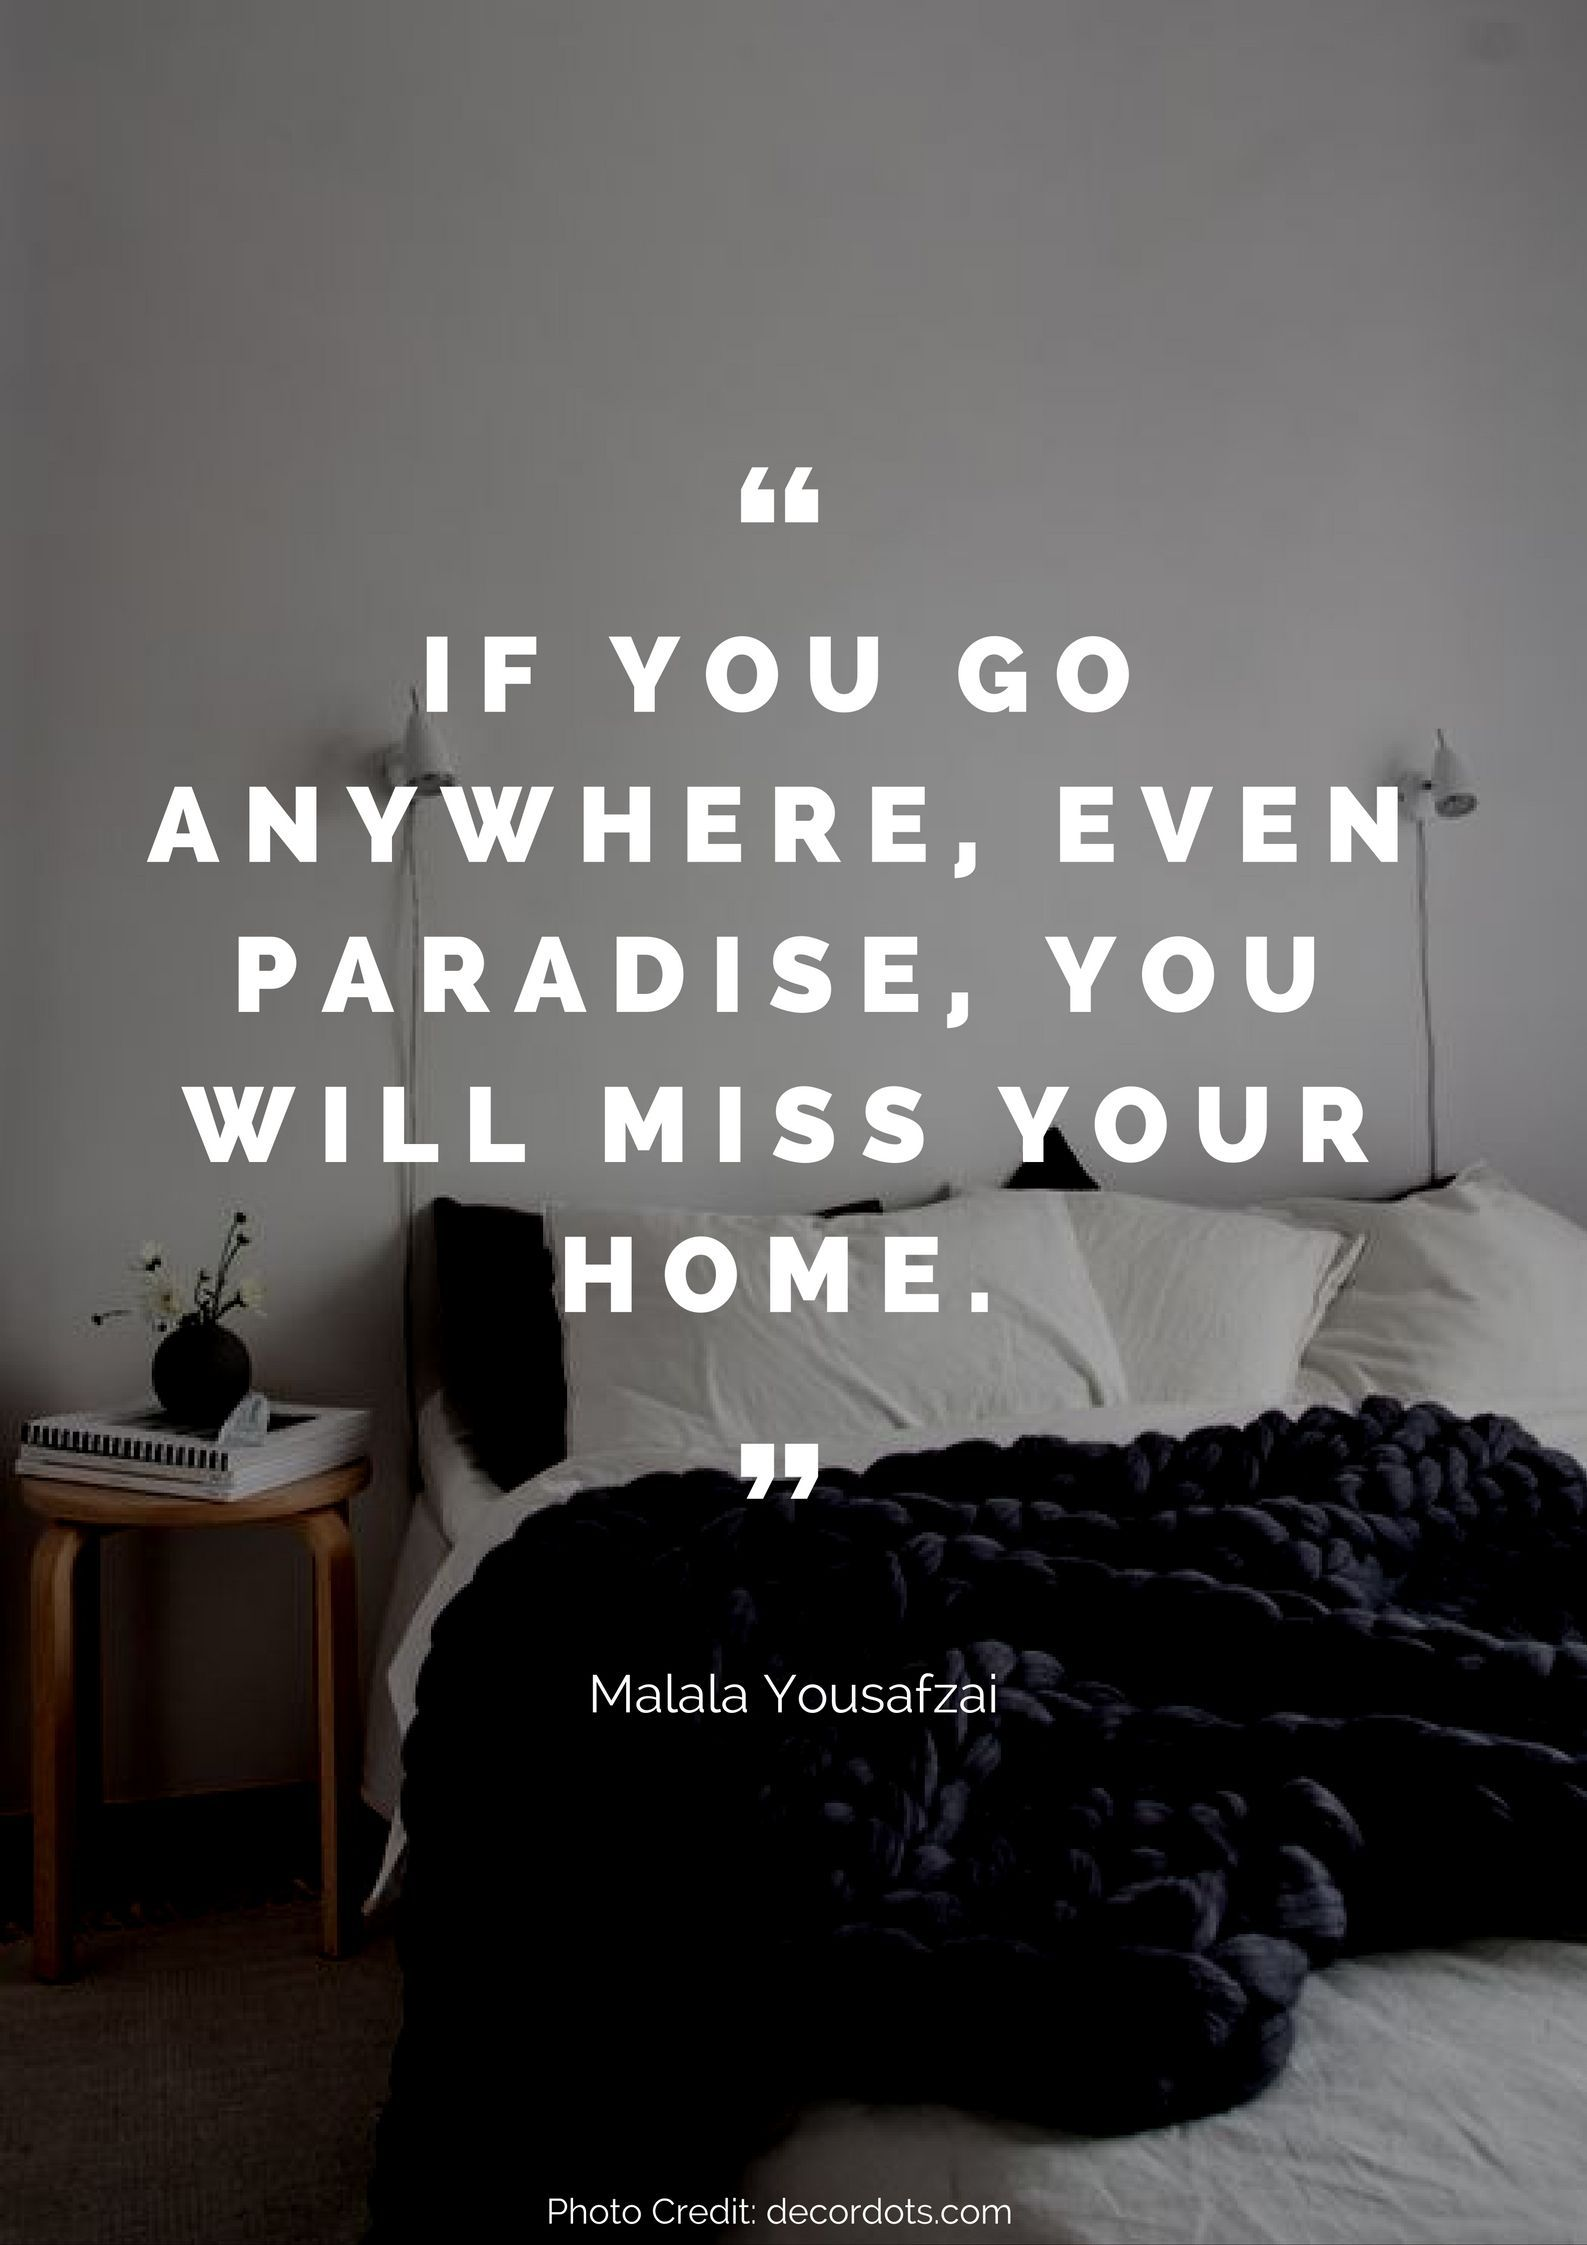 36 Beautiful Quotes About Home Nothing Like Home Home Missing Home Quotes Home Quotes And Sayings Home Decor Quotes